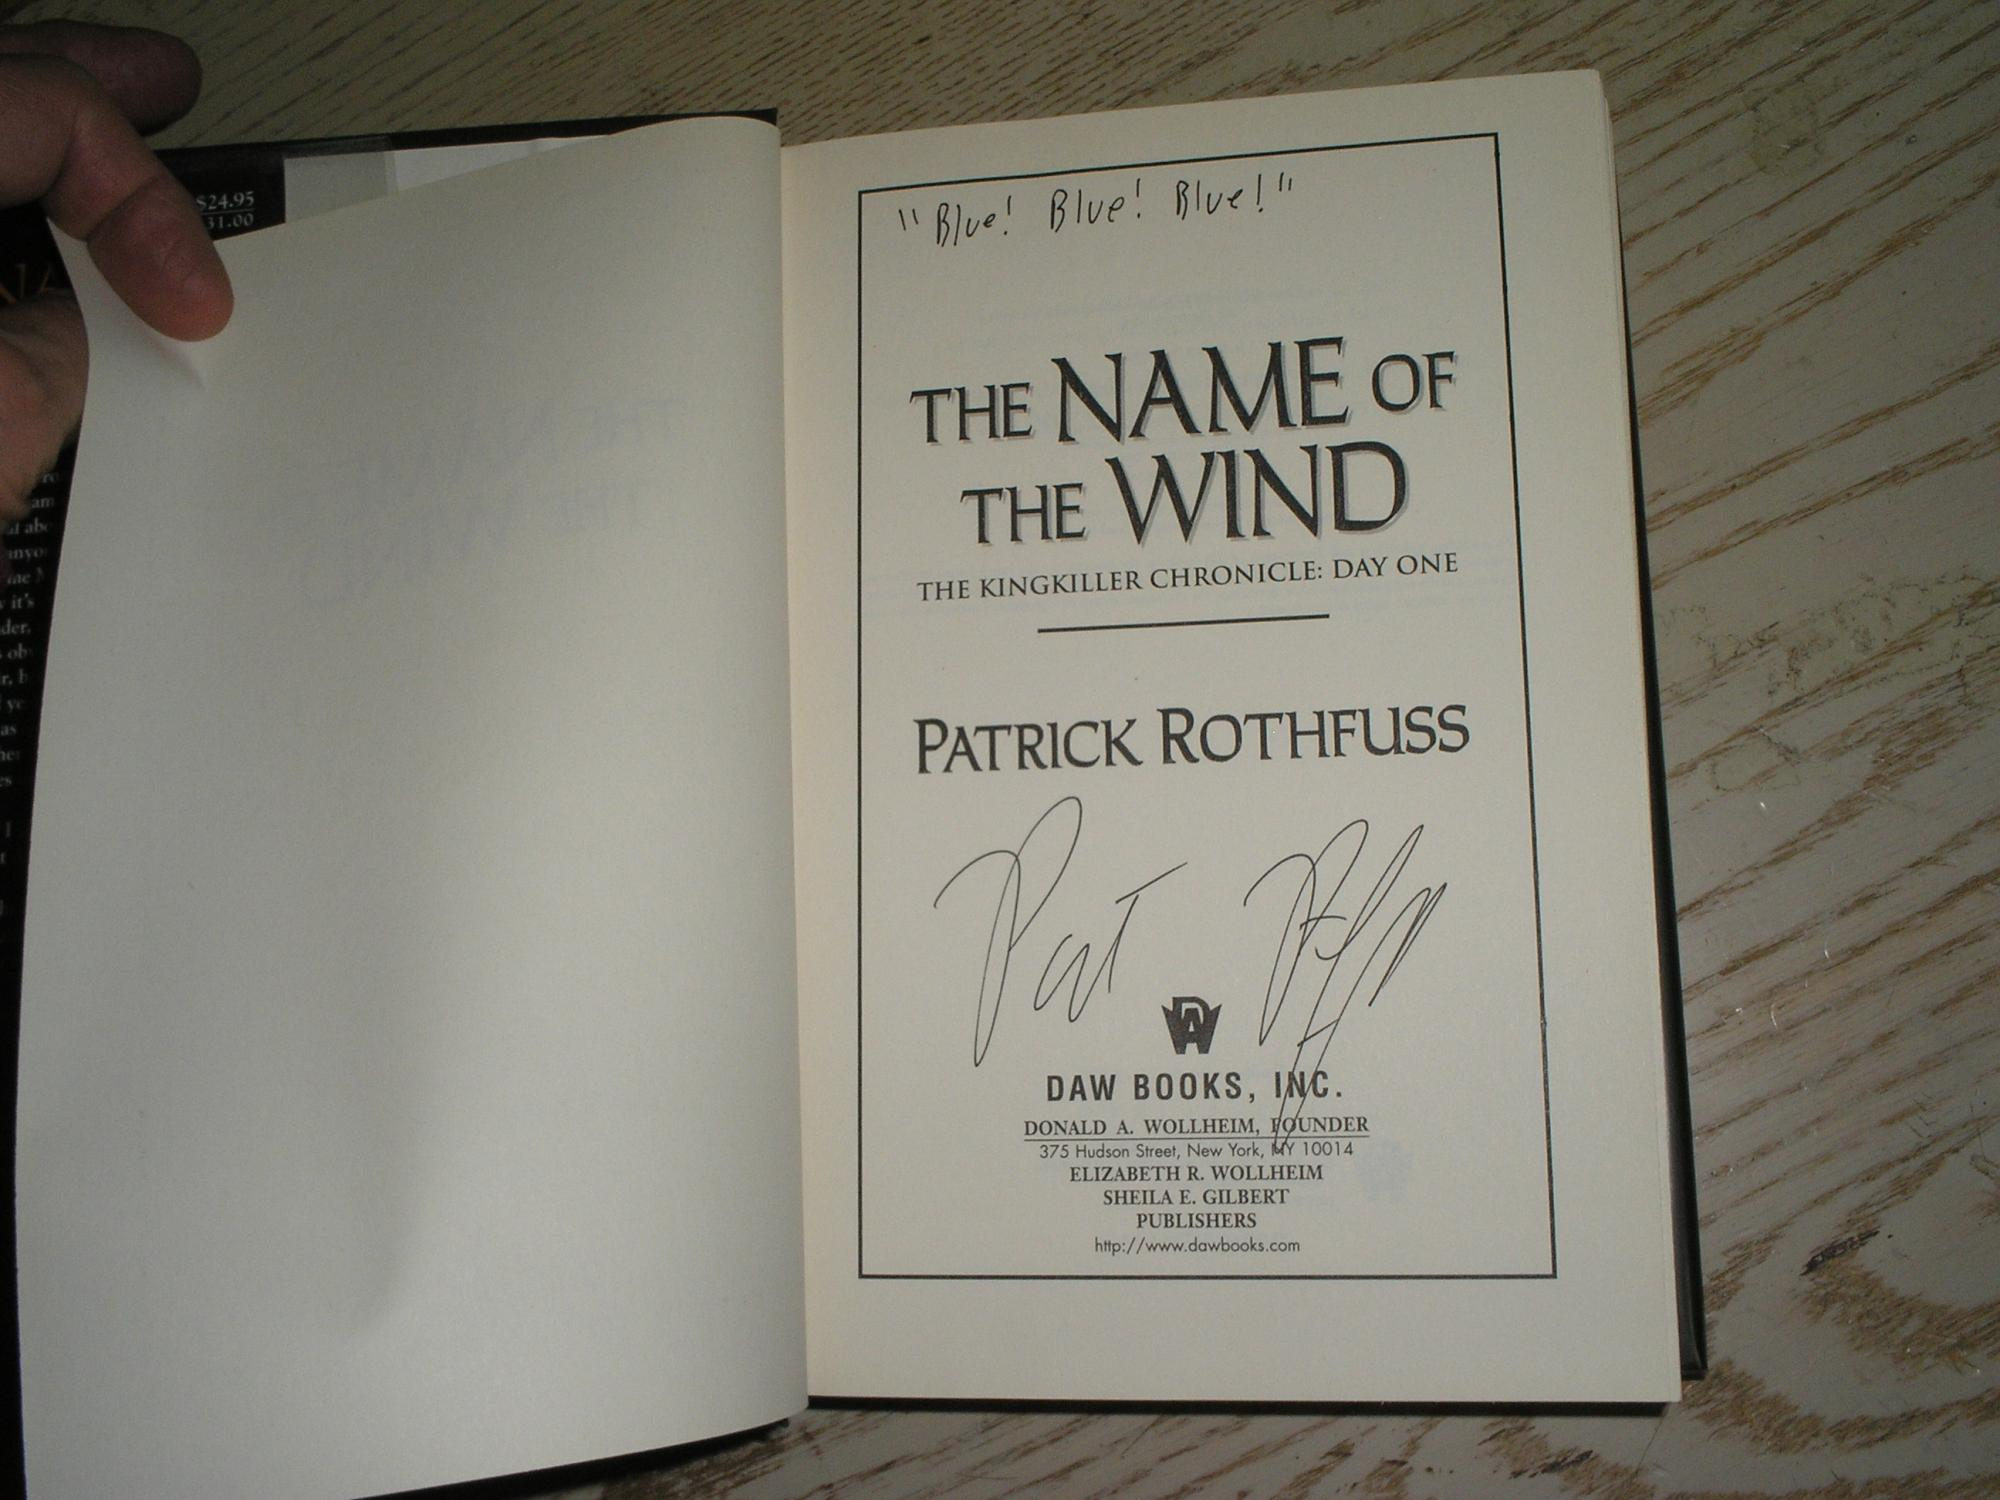 Nuevo Libro De Patrick Rothfuss The Name Of The Wind De Patrick Rothfuss Daw 9780756404079